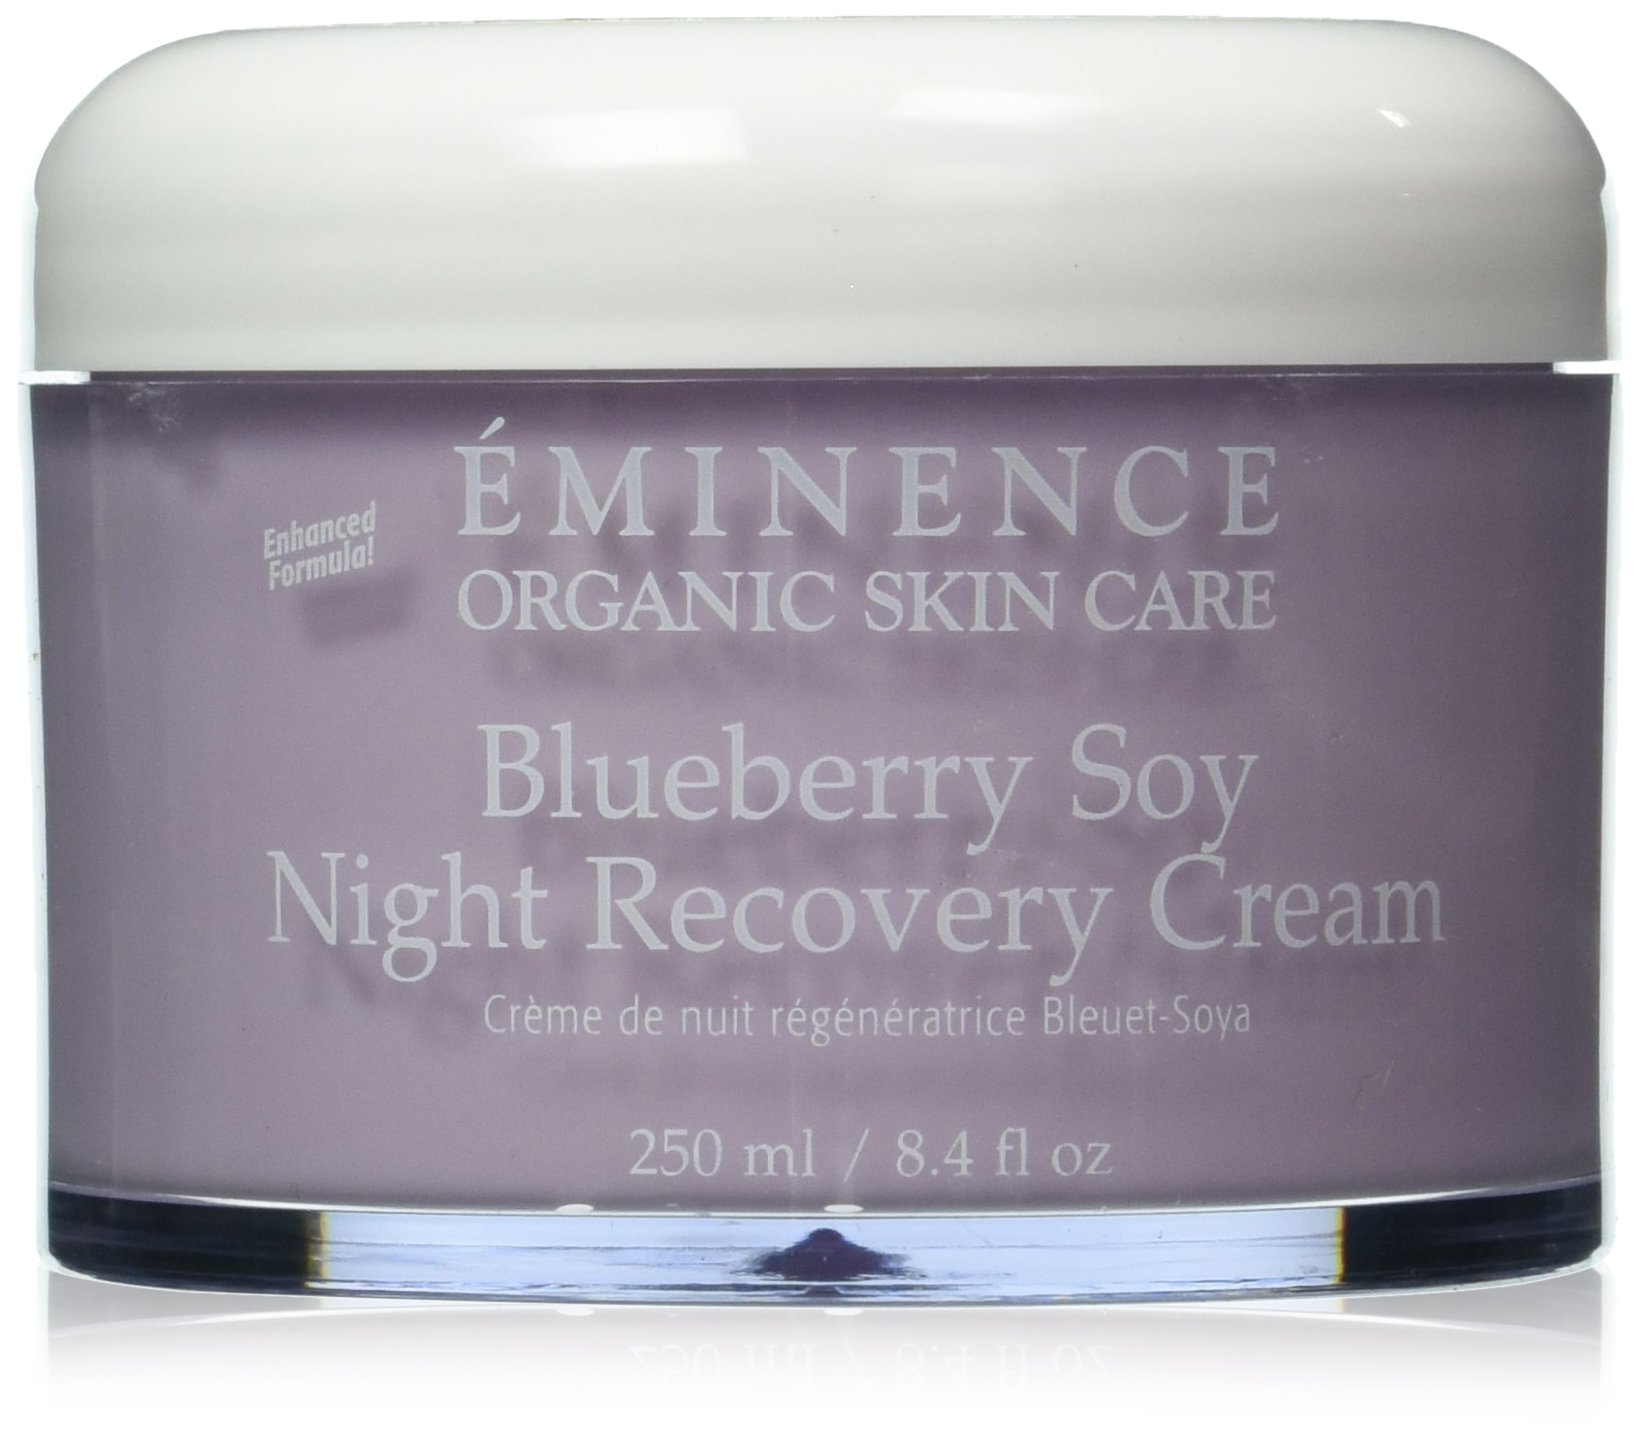 Eminence Blueberry Soy Night Recovery Cream, 8.4 Ounce